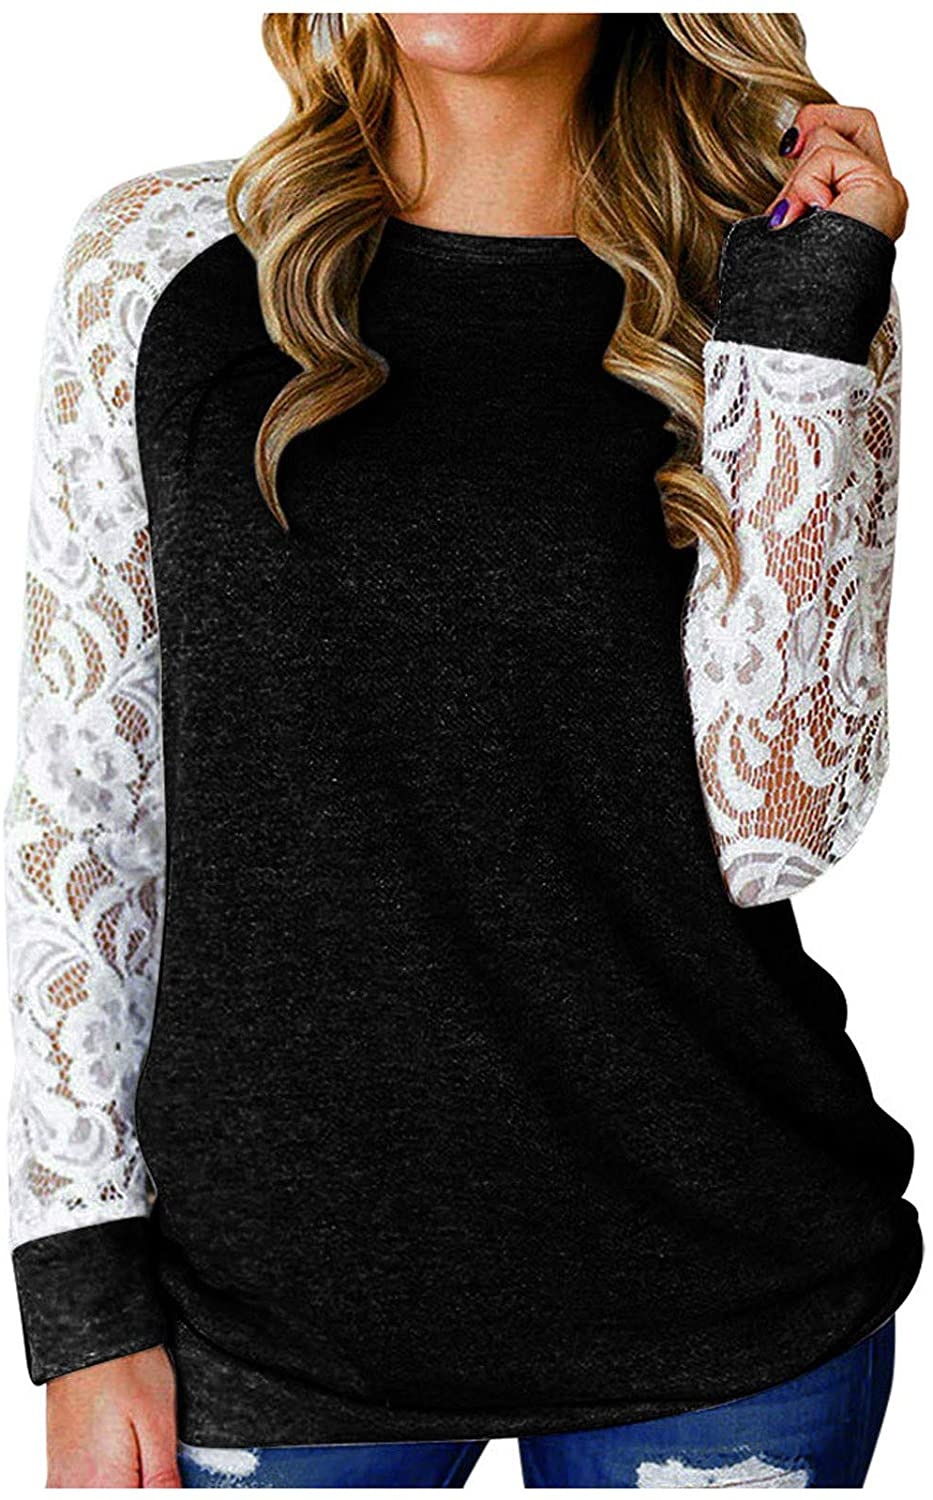 YSLMNOR Fall Plus Size Tshirt for Womens Lace Floral Splicing Tunic Tops Long Sleeve Crewneck Blouse